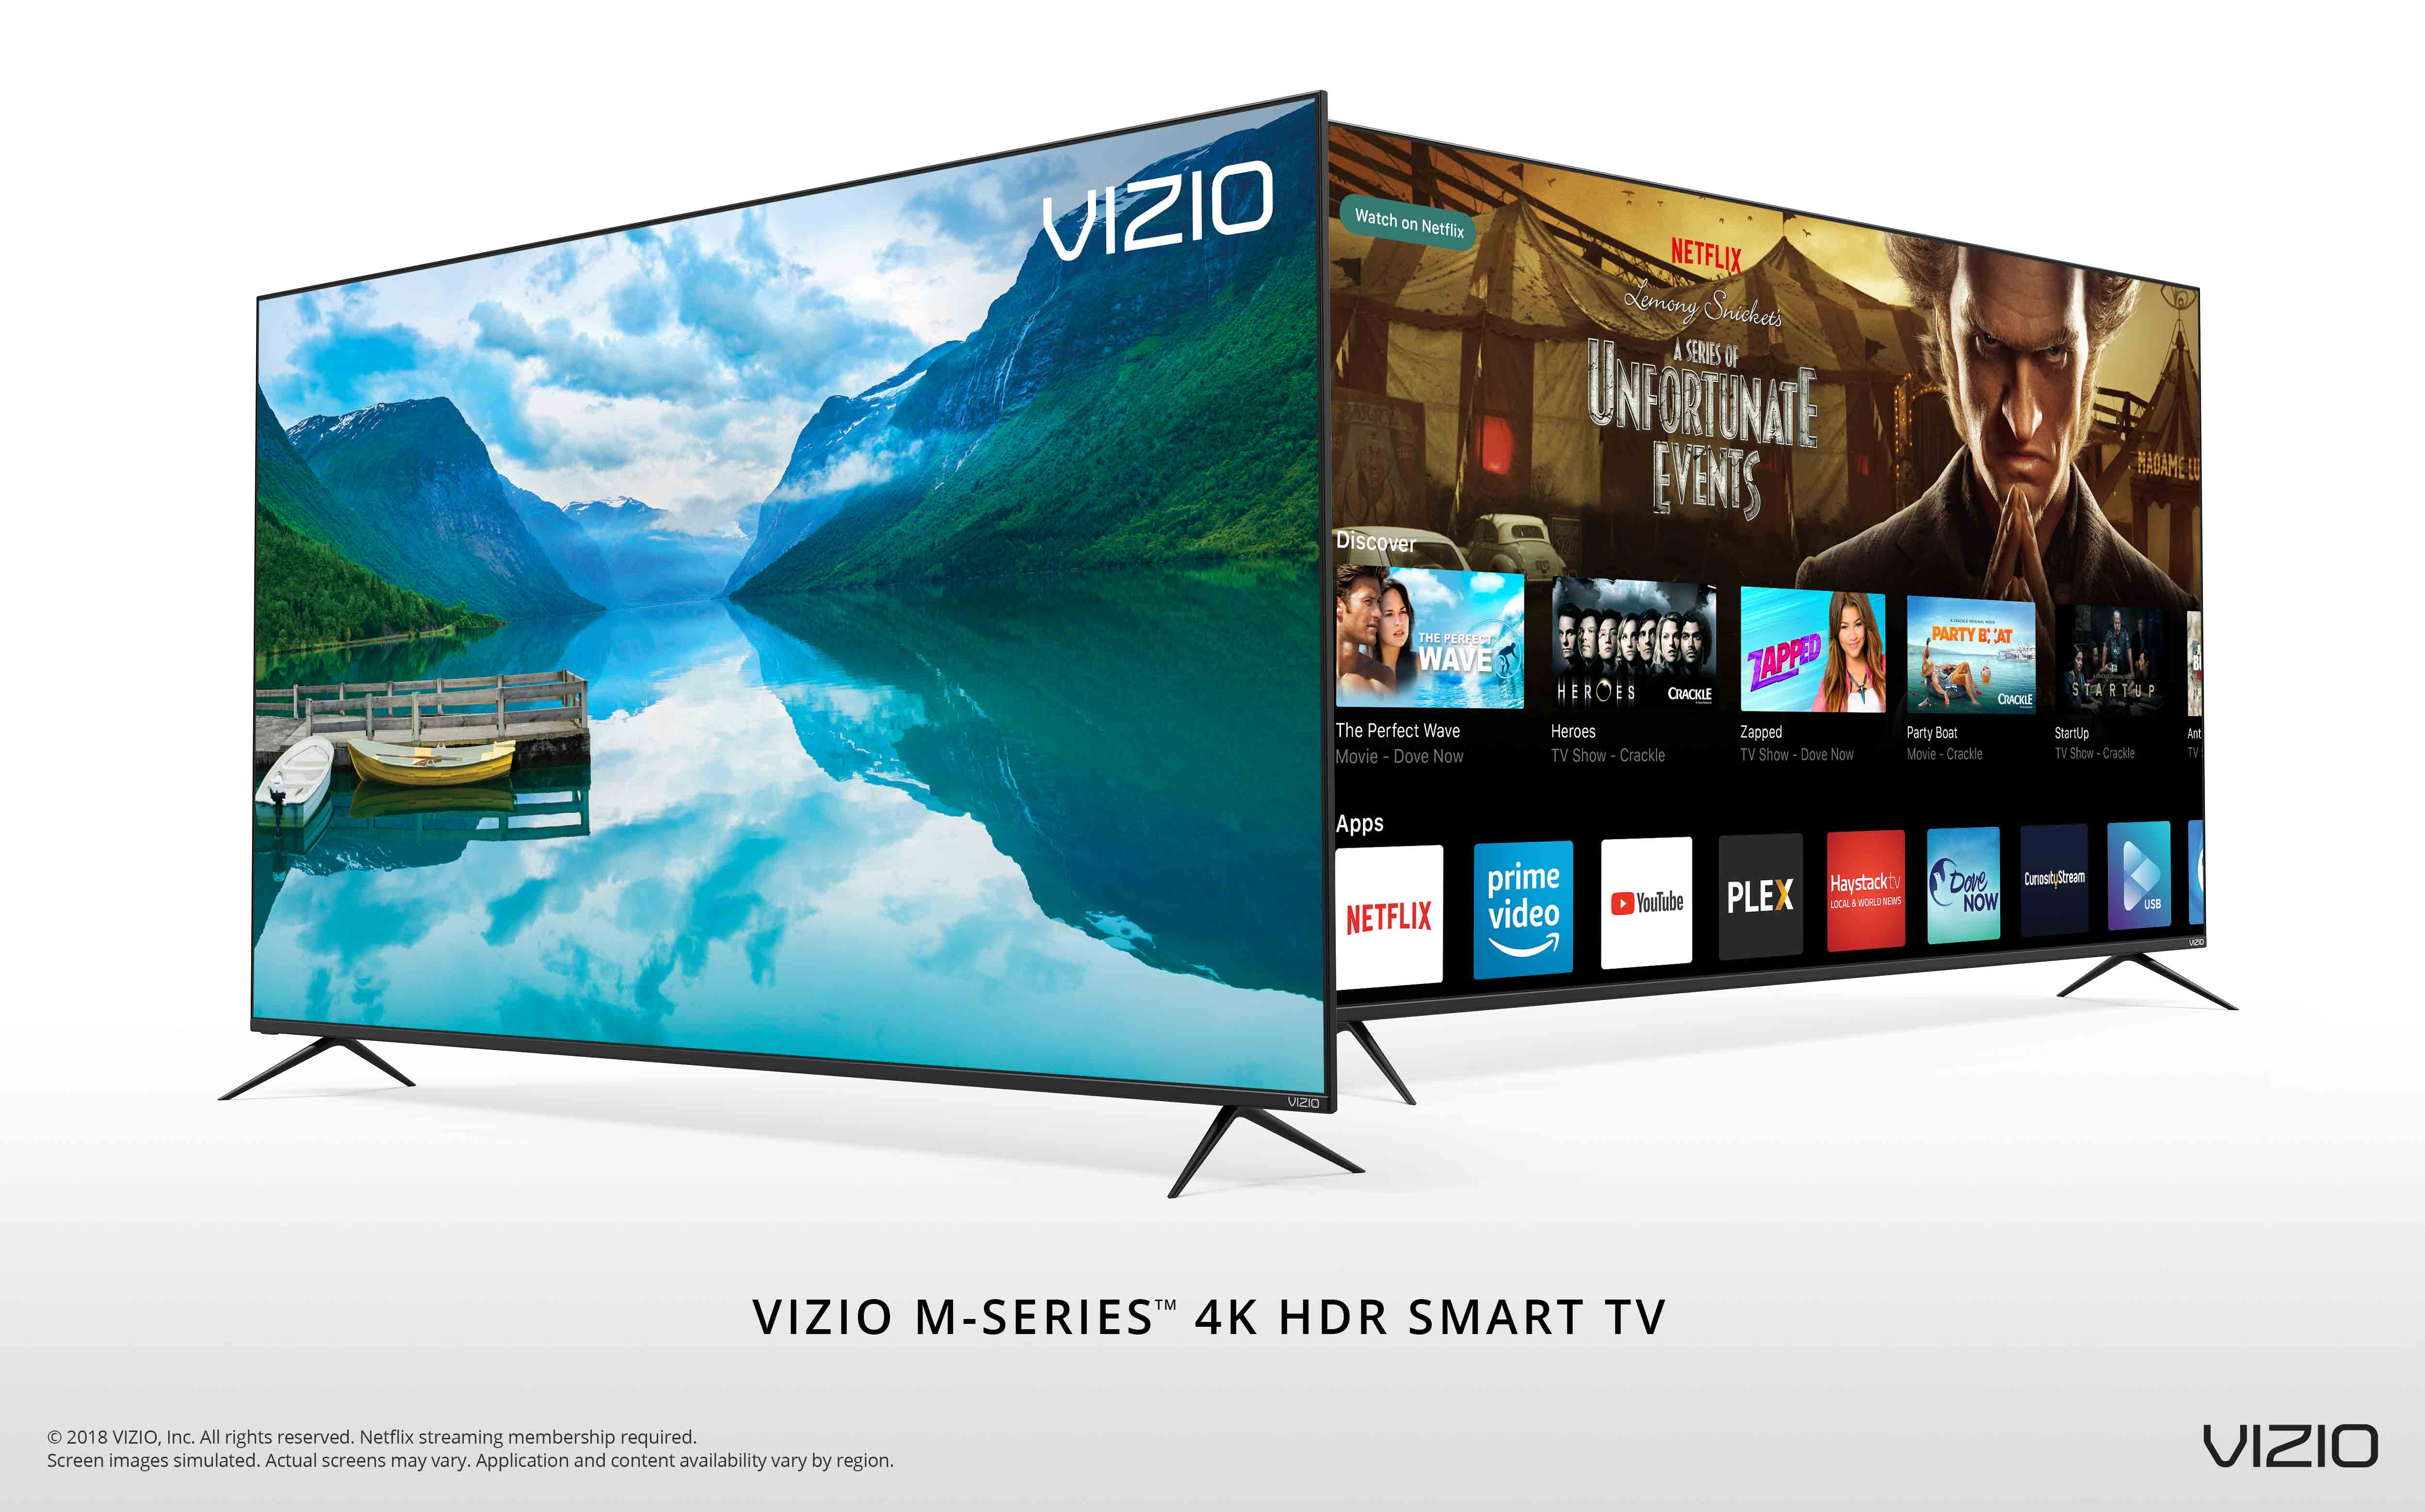 VIZIO Rolls Out All-New 2018 M-Series™ 4K HDR Smart TVs to